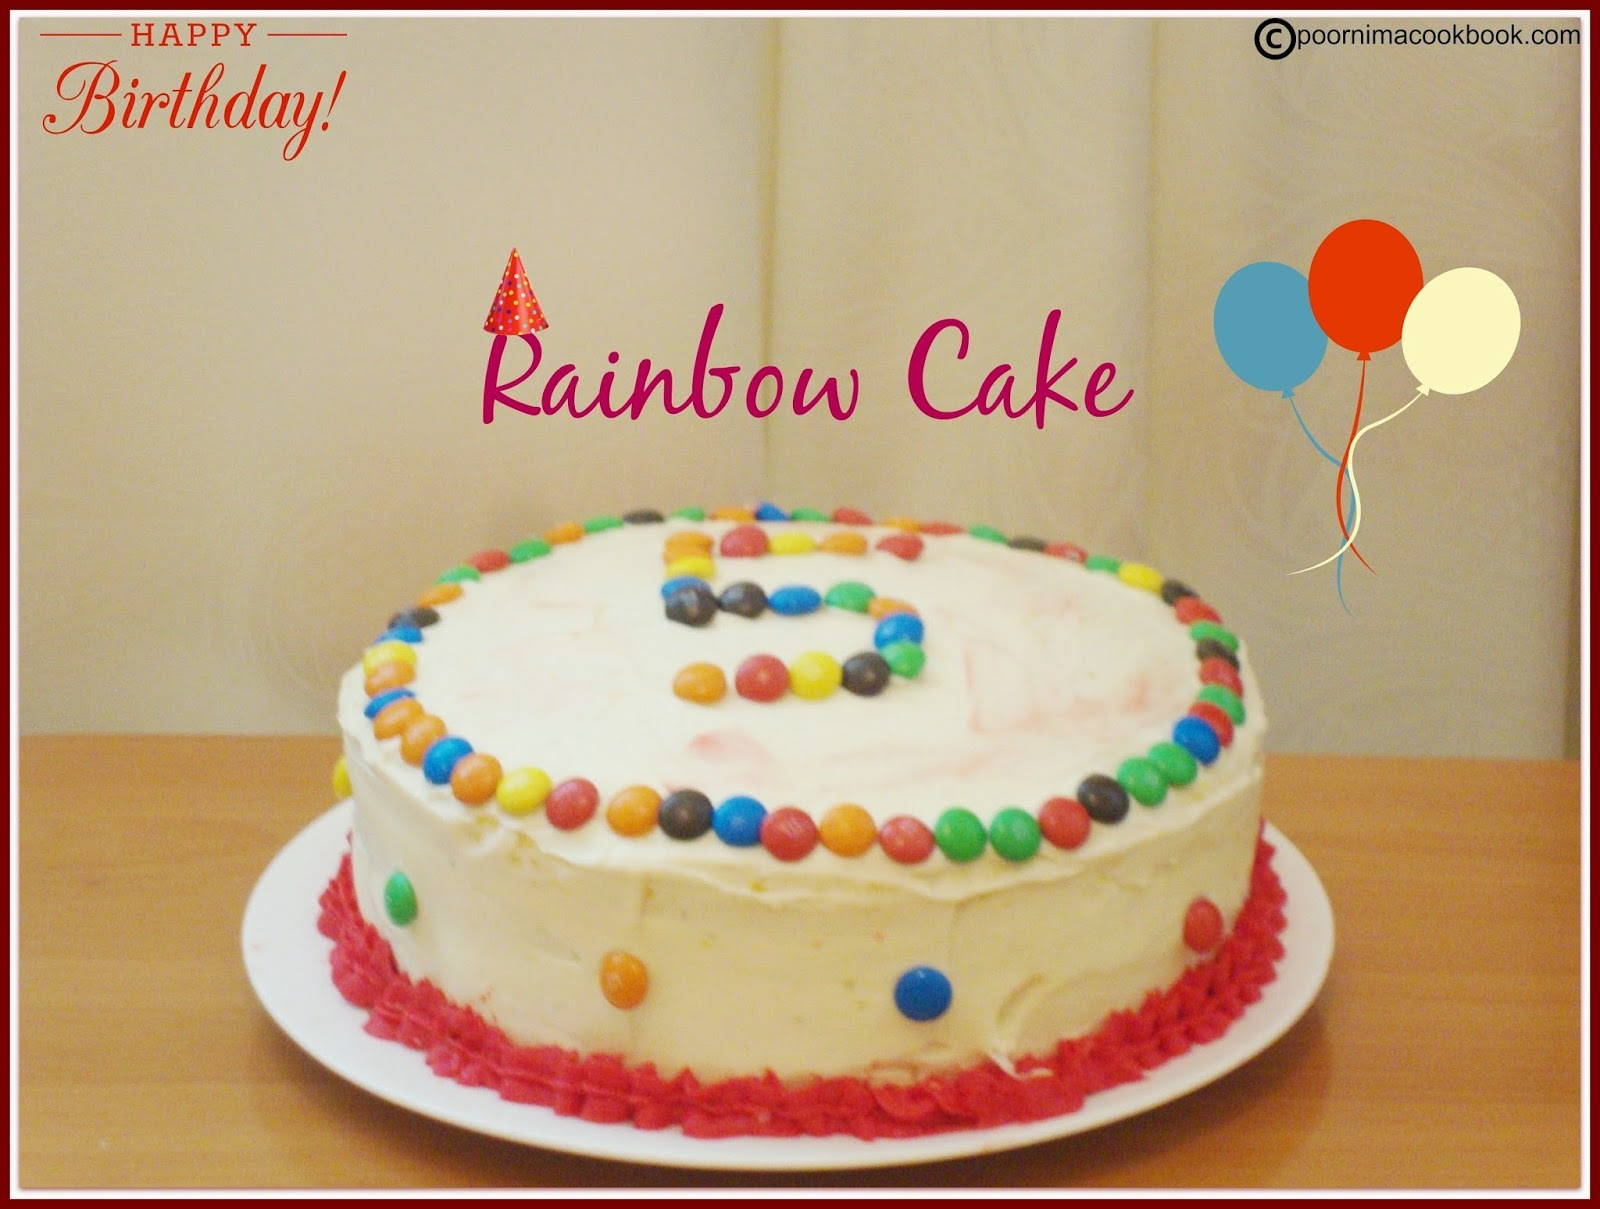 Rainbow Cake / 4 Layer Cake / Layered Rainbow Cake with Cream Cheese Frosting